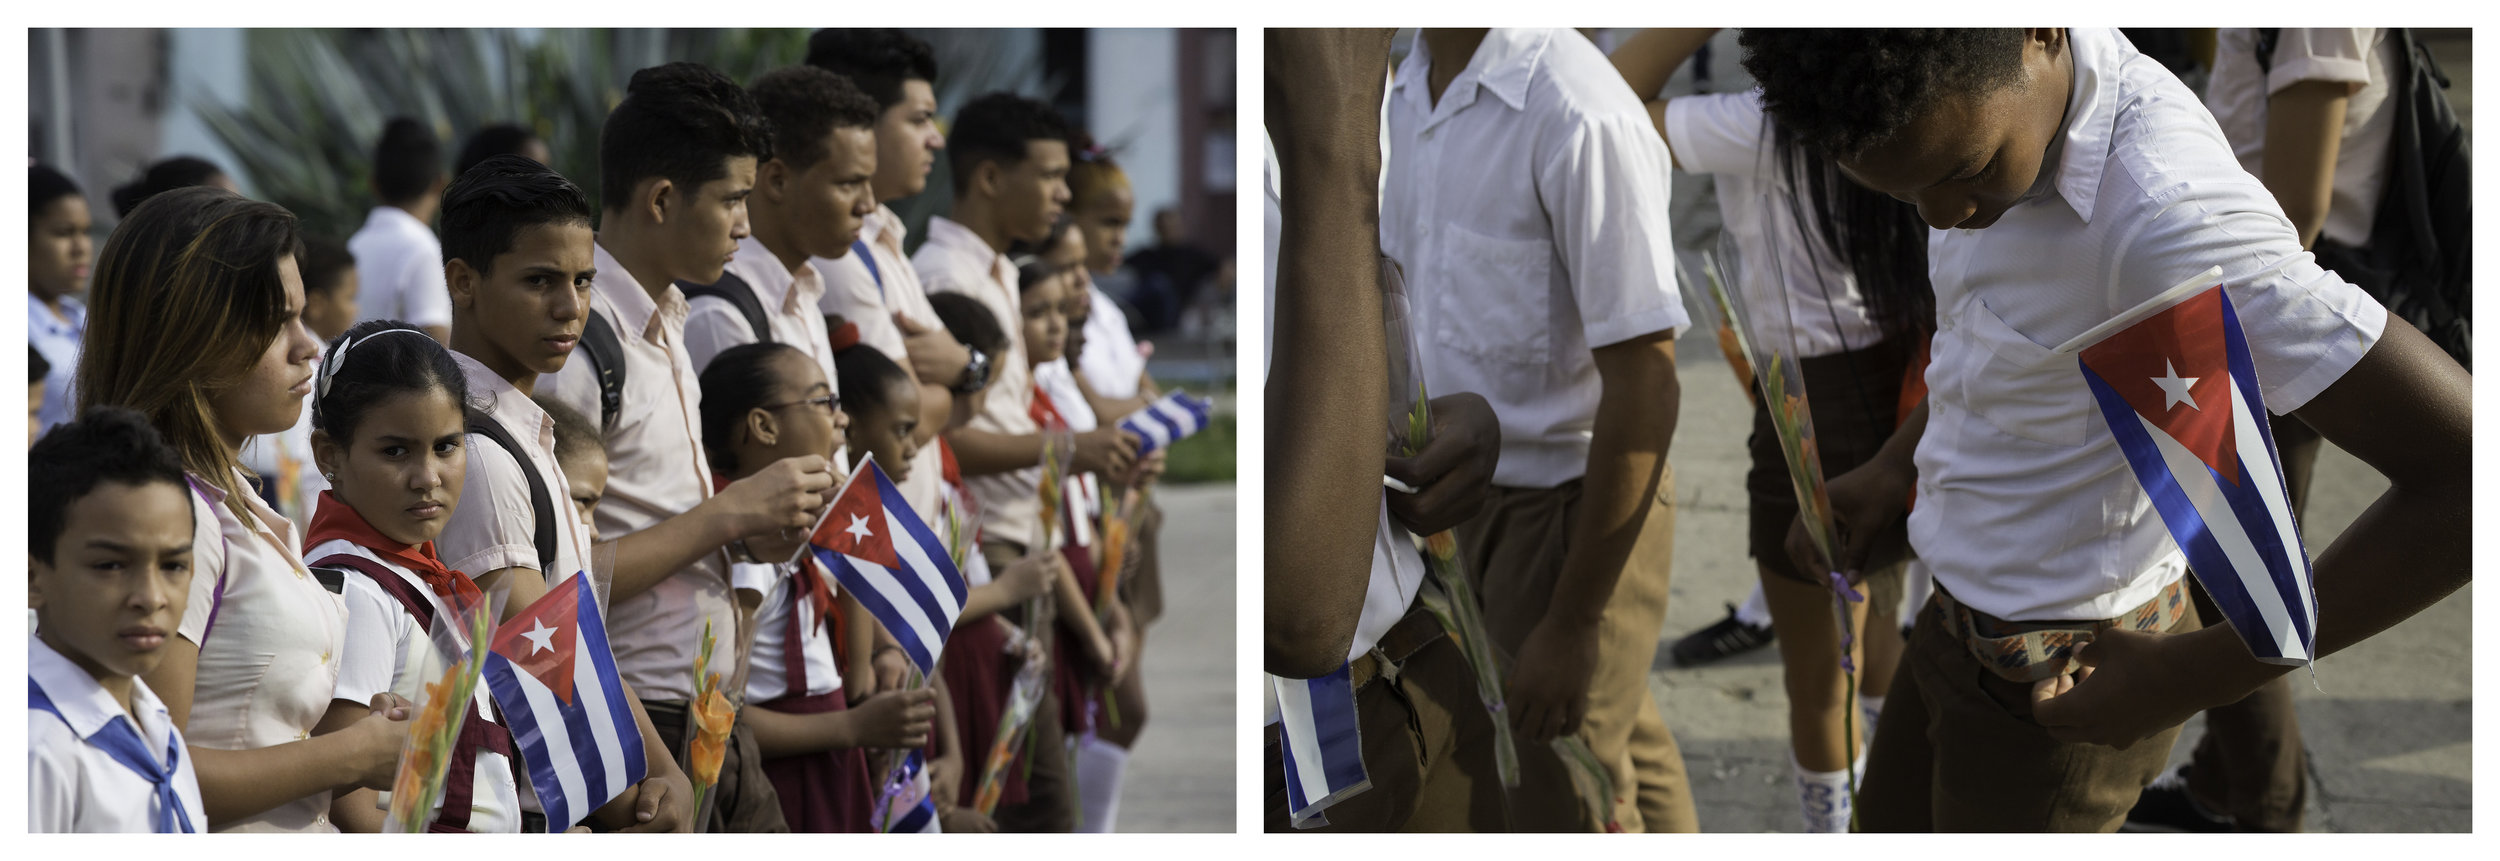 PATRIOT KIDS DIPTYCH.jpg